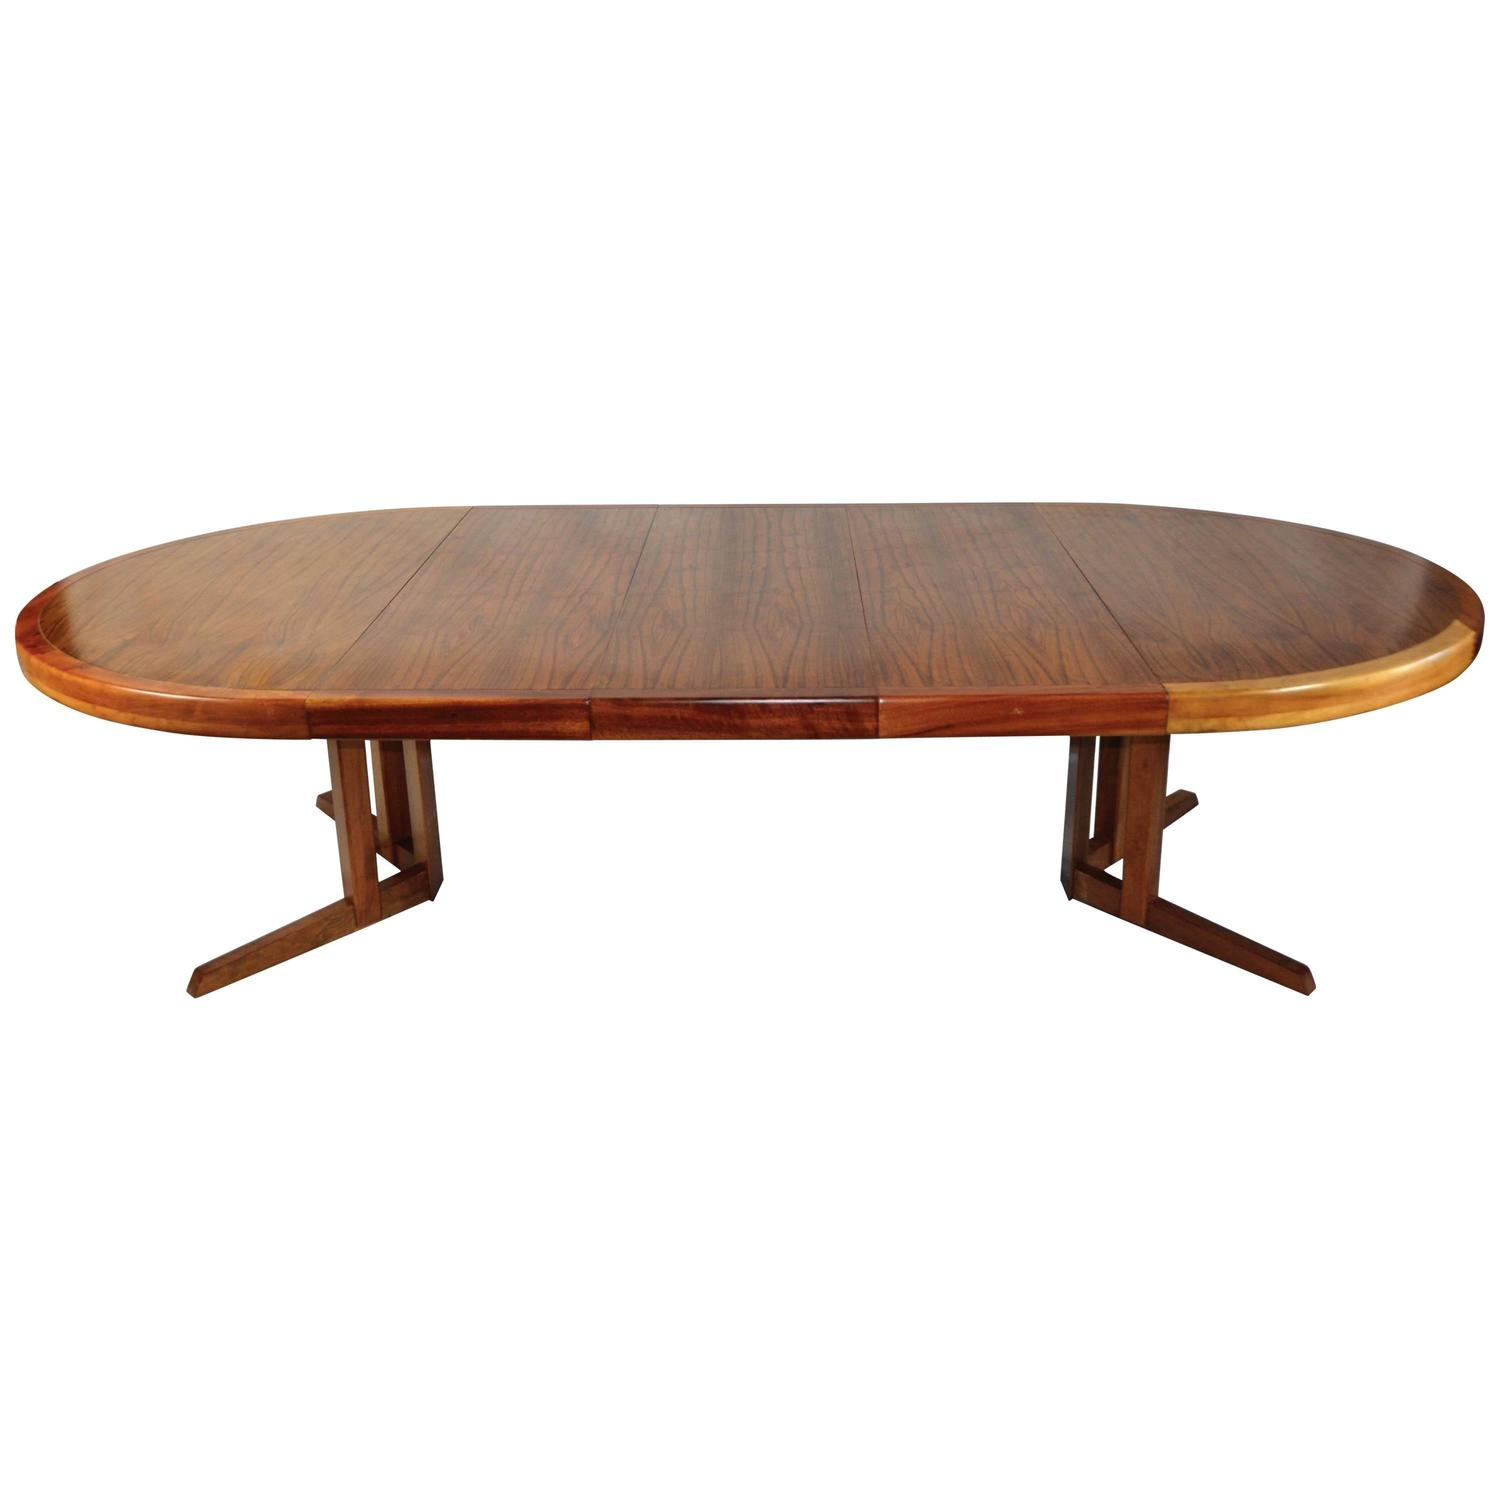 george nakashima dining table model 277 for widdicomb 1961 for